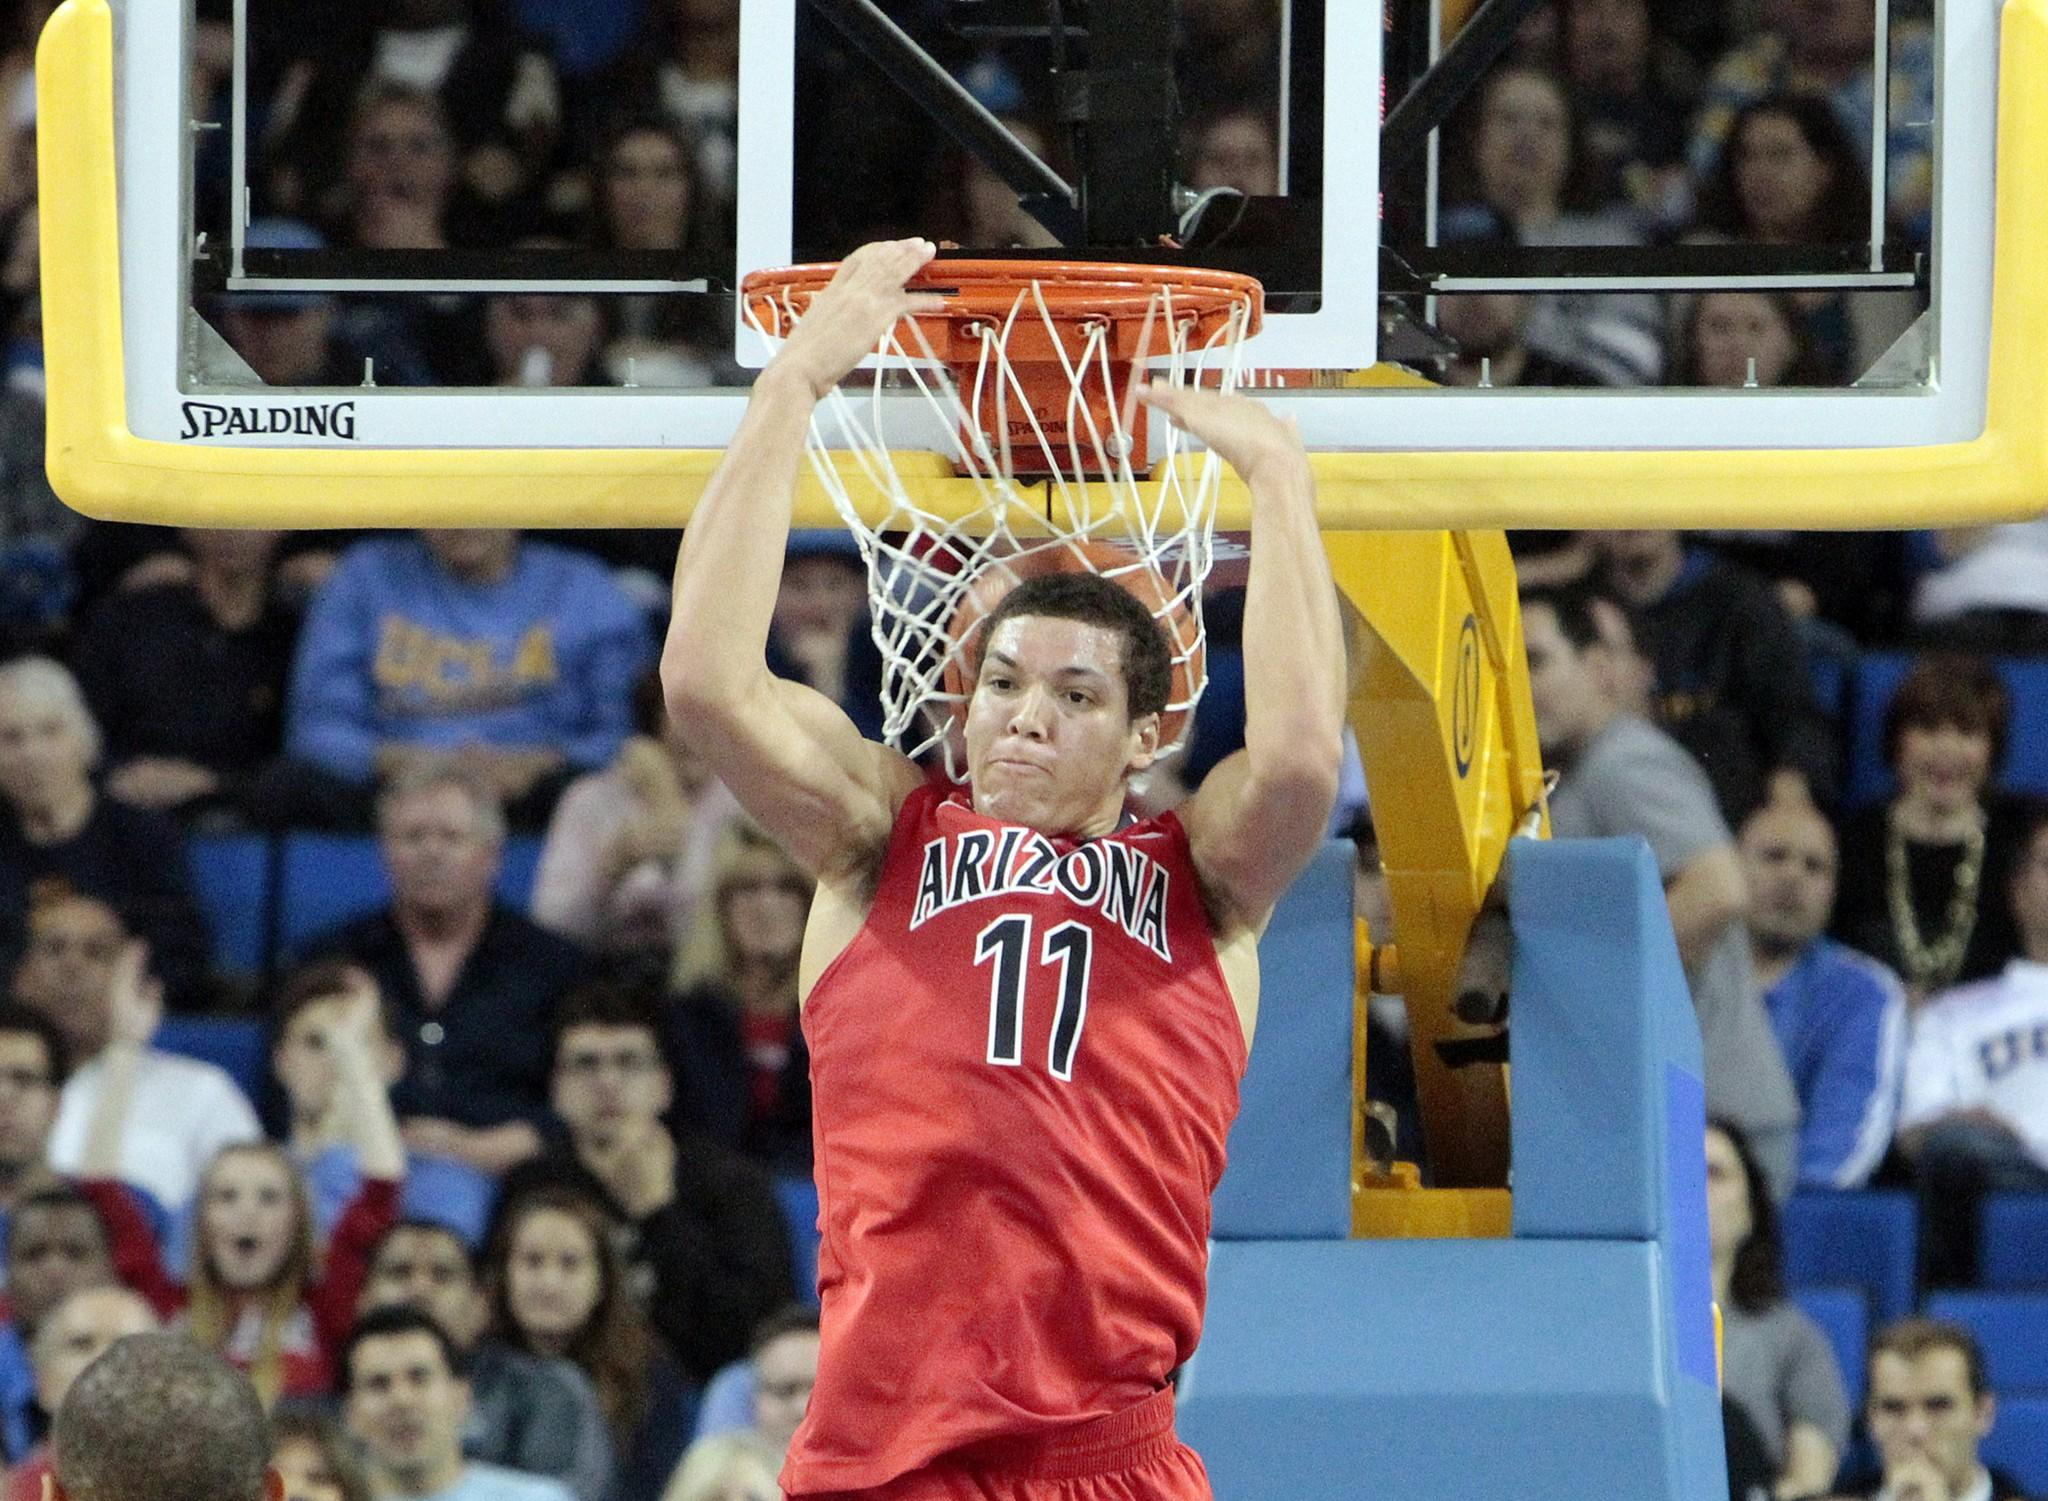 Arizona forward Aaron Gordon throws down a reverse dunk against UCLA on Jan. 9.